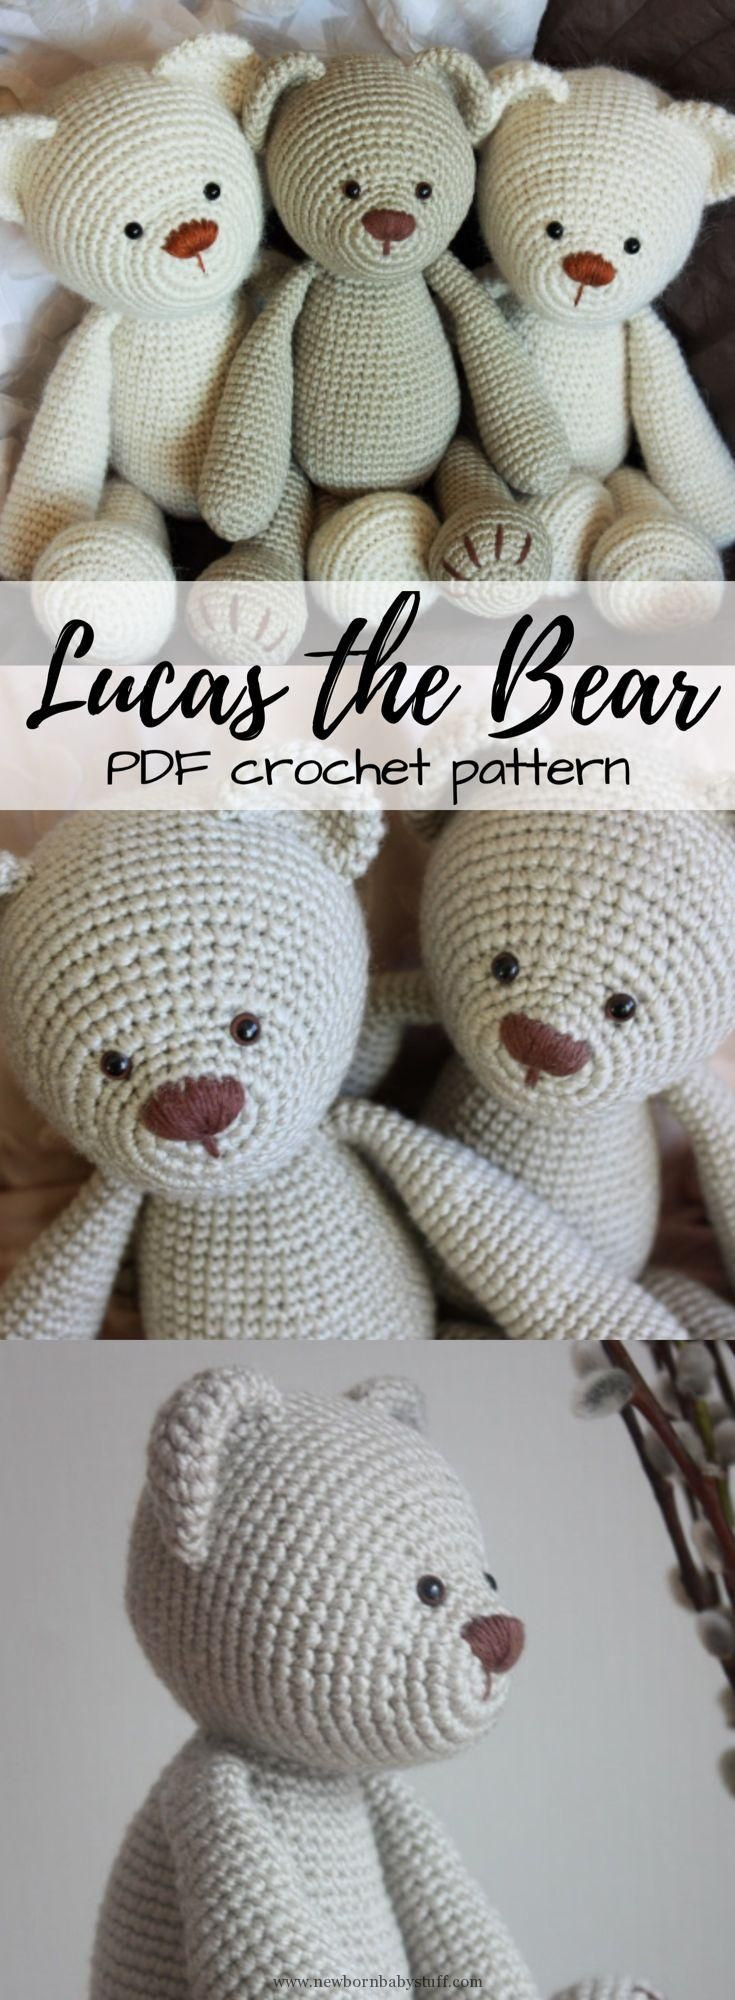 Baby Knitting Patterns Lucas the bear PDF crochet pattern. Cute Amigurumi toy to ma...